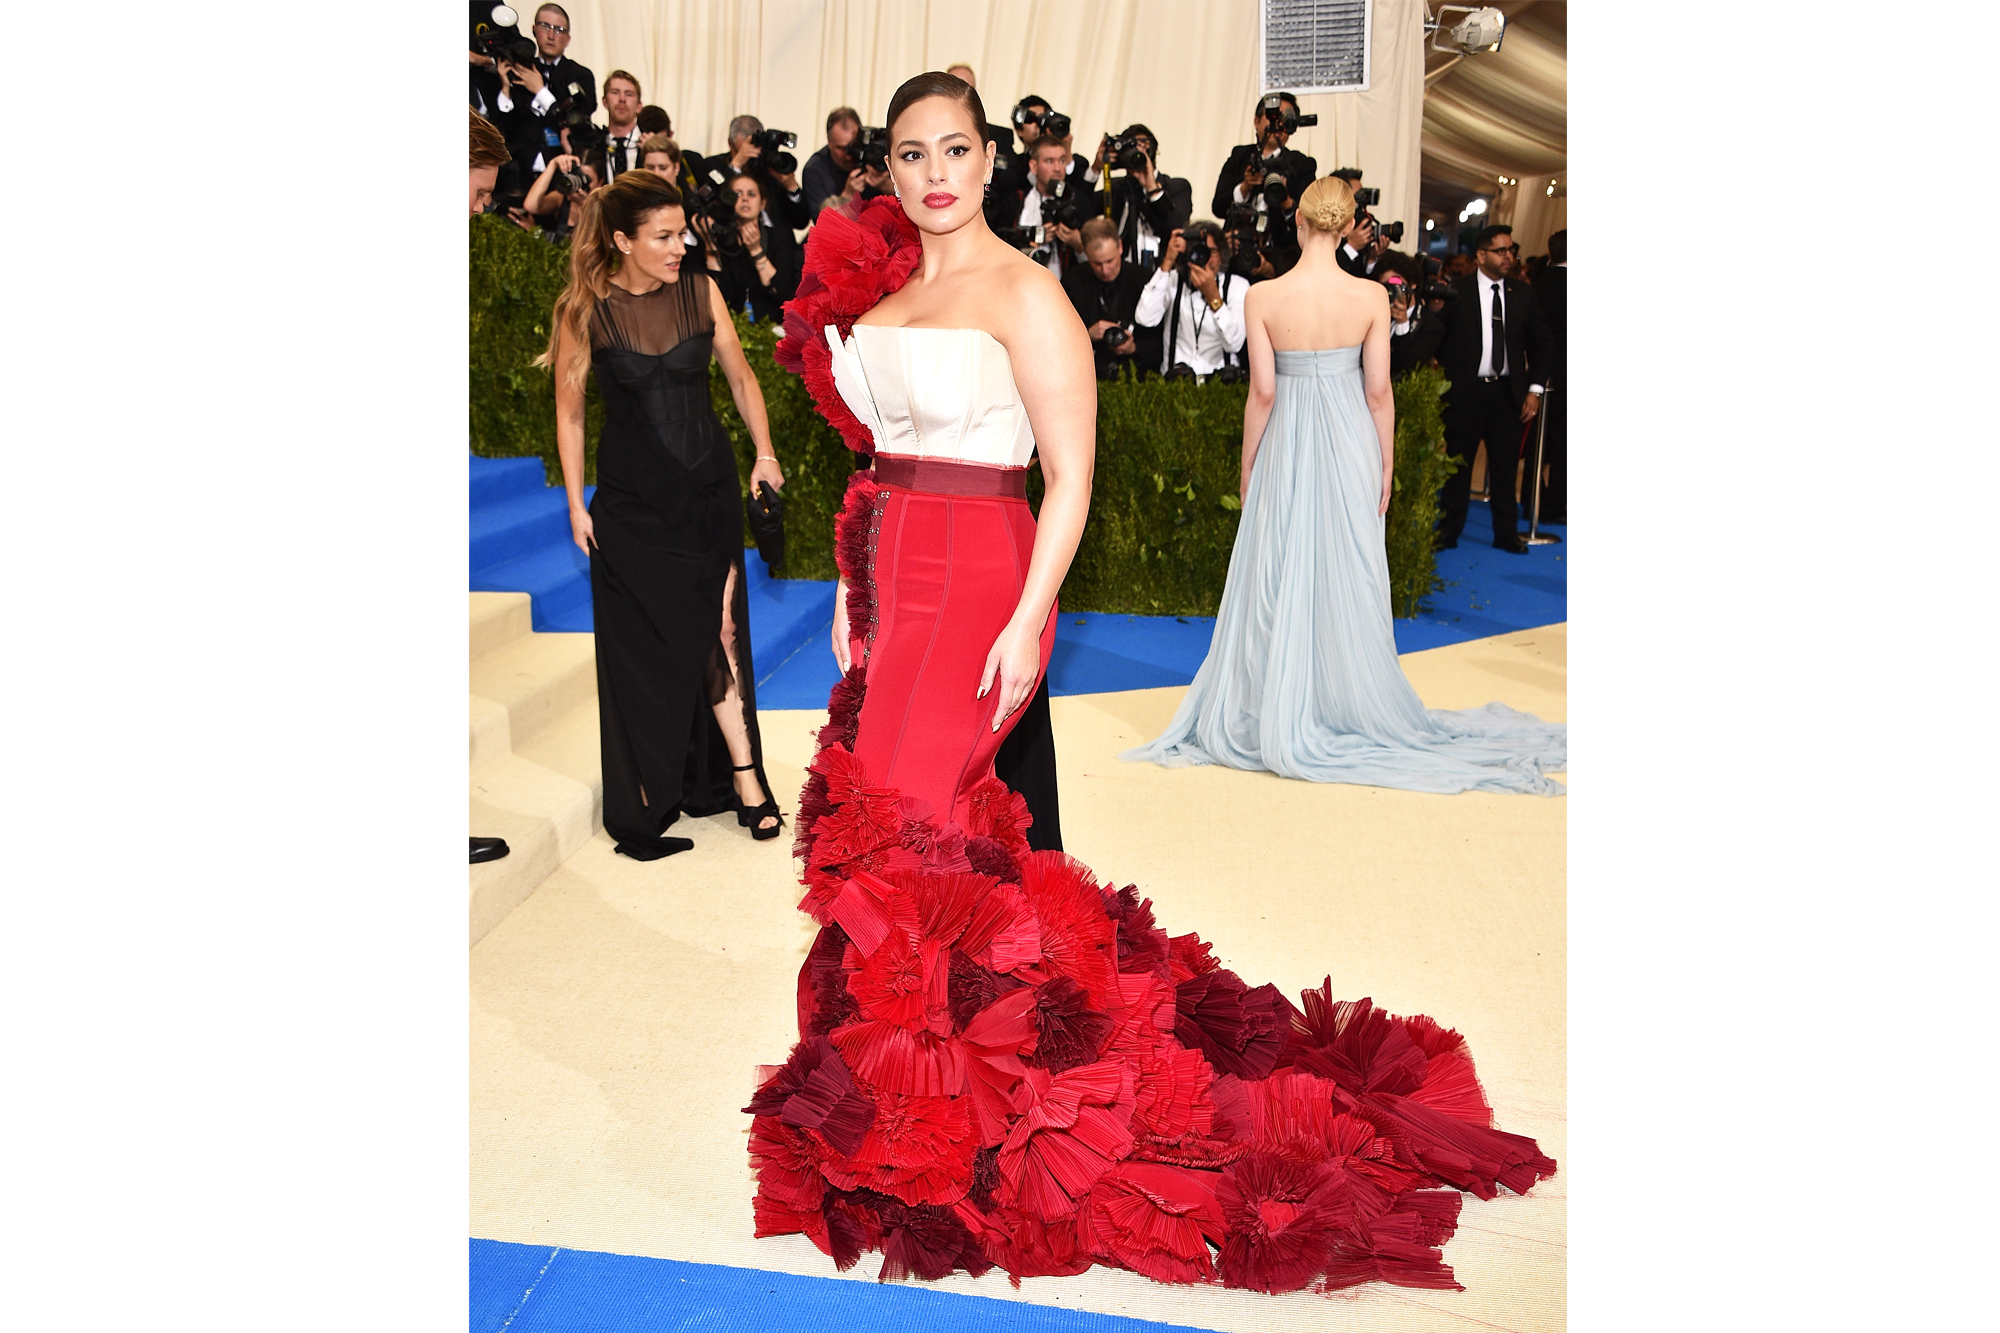 """NEW YORK, NY - MAY 01: Ashley Graham attends the """"Rei Kawakubo/Comme des Garcons: Art Of The In-Between"""" Costume Institute Gala at Metropolitan Museum of Art on May 1, 2017 in New York City. (Photo by Kevin Mazur/WireImage)"""